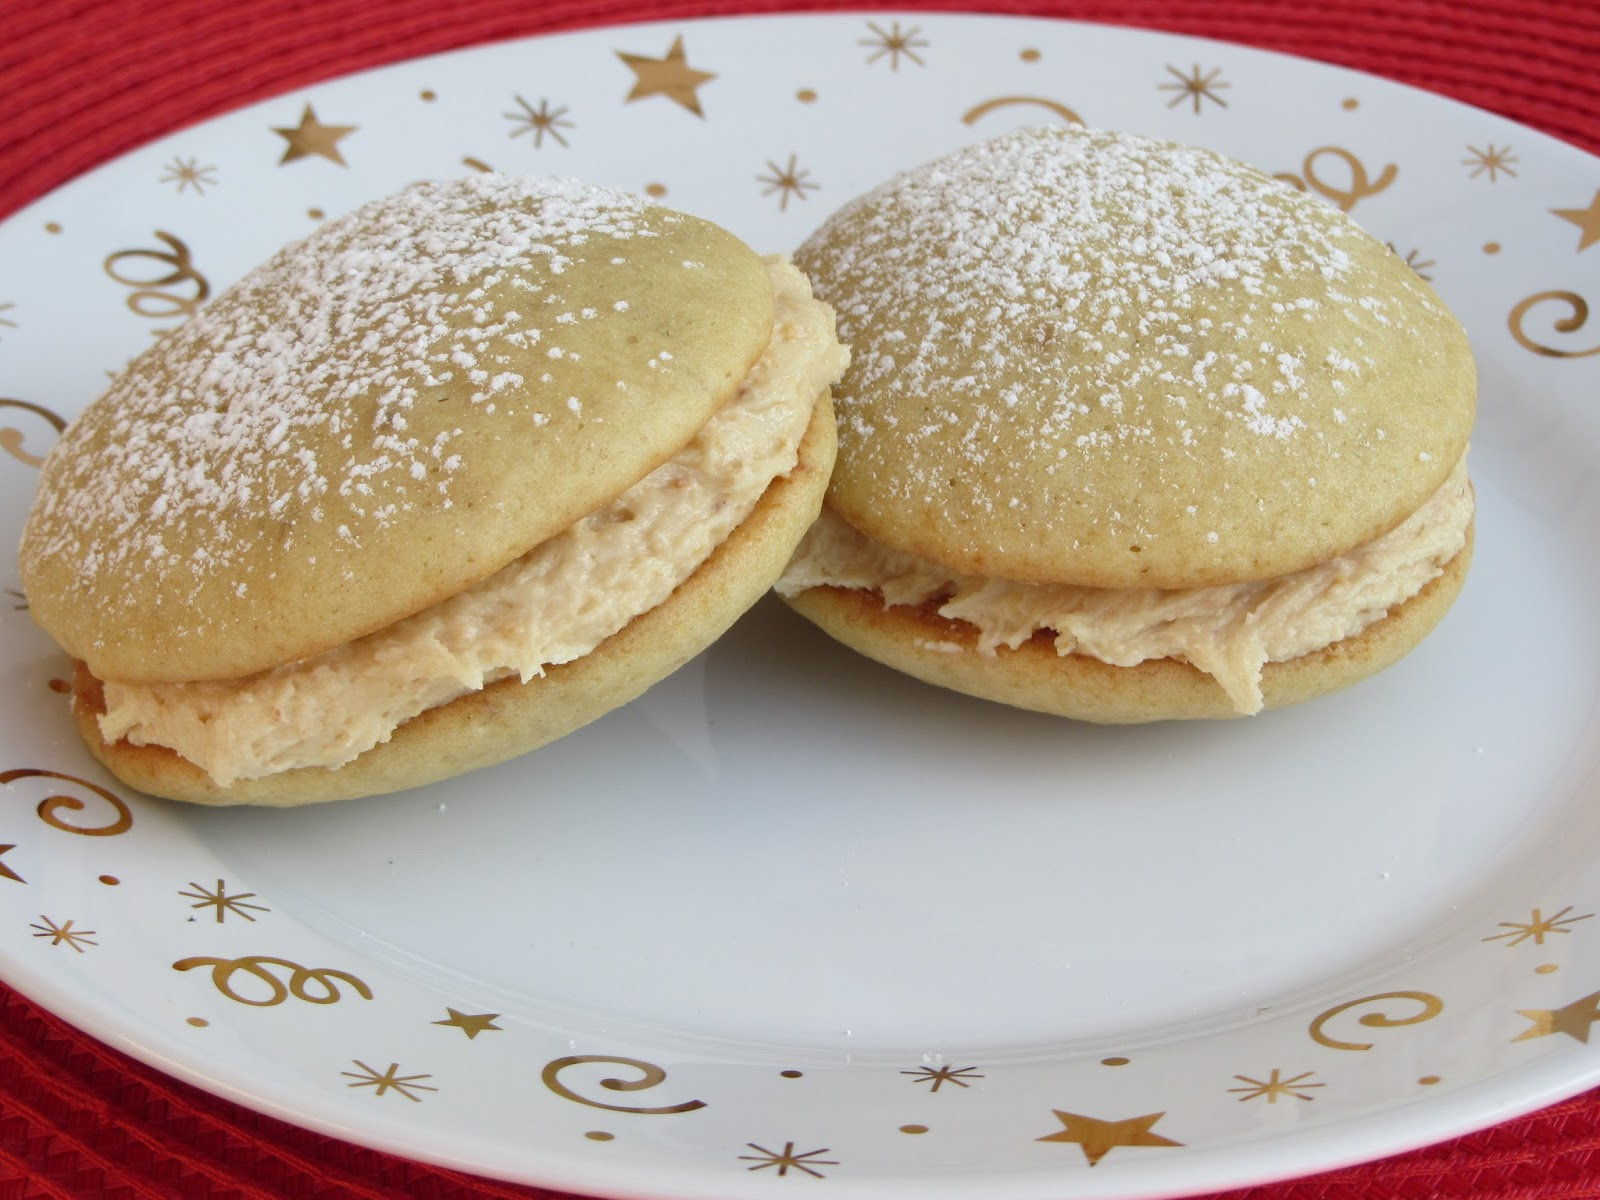 Been There Baked That: Peanut Butter-Banana Whoopie Pies